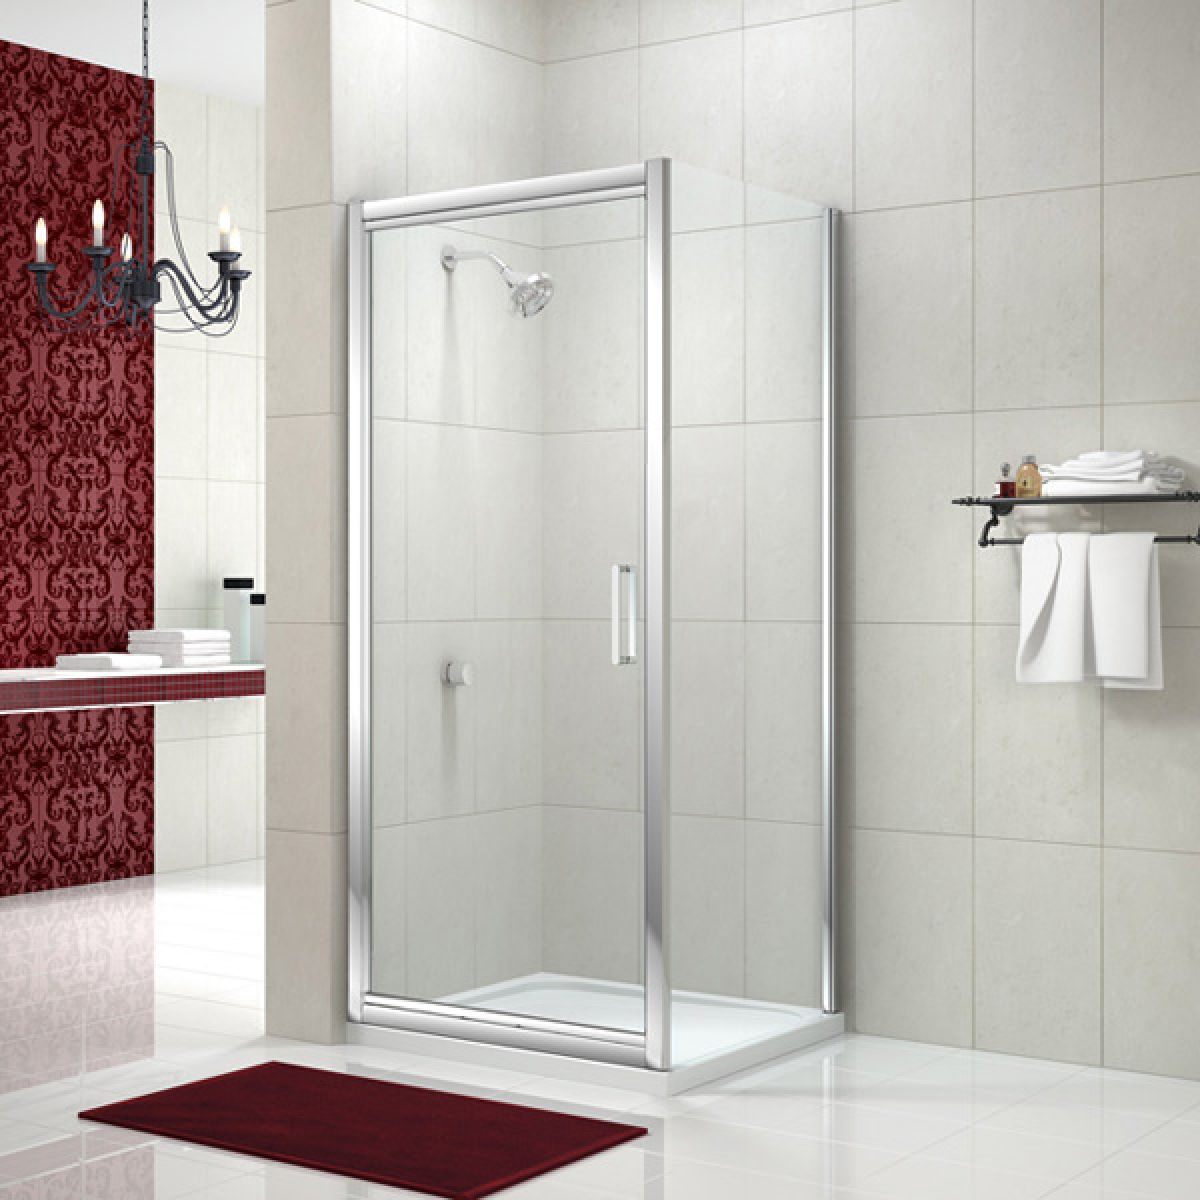 Merlyn Series 8 In-Fold Shower Door with Optional Side Panel